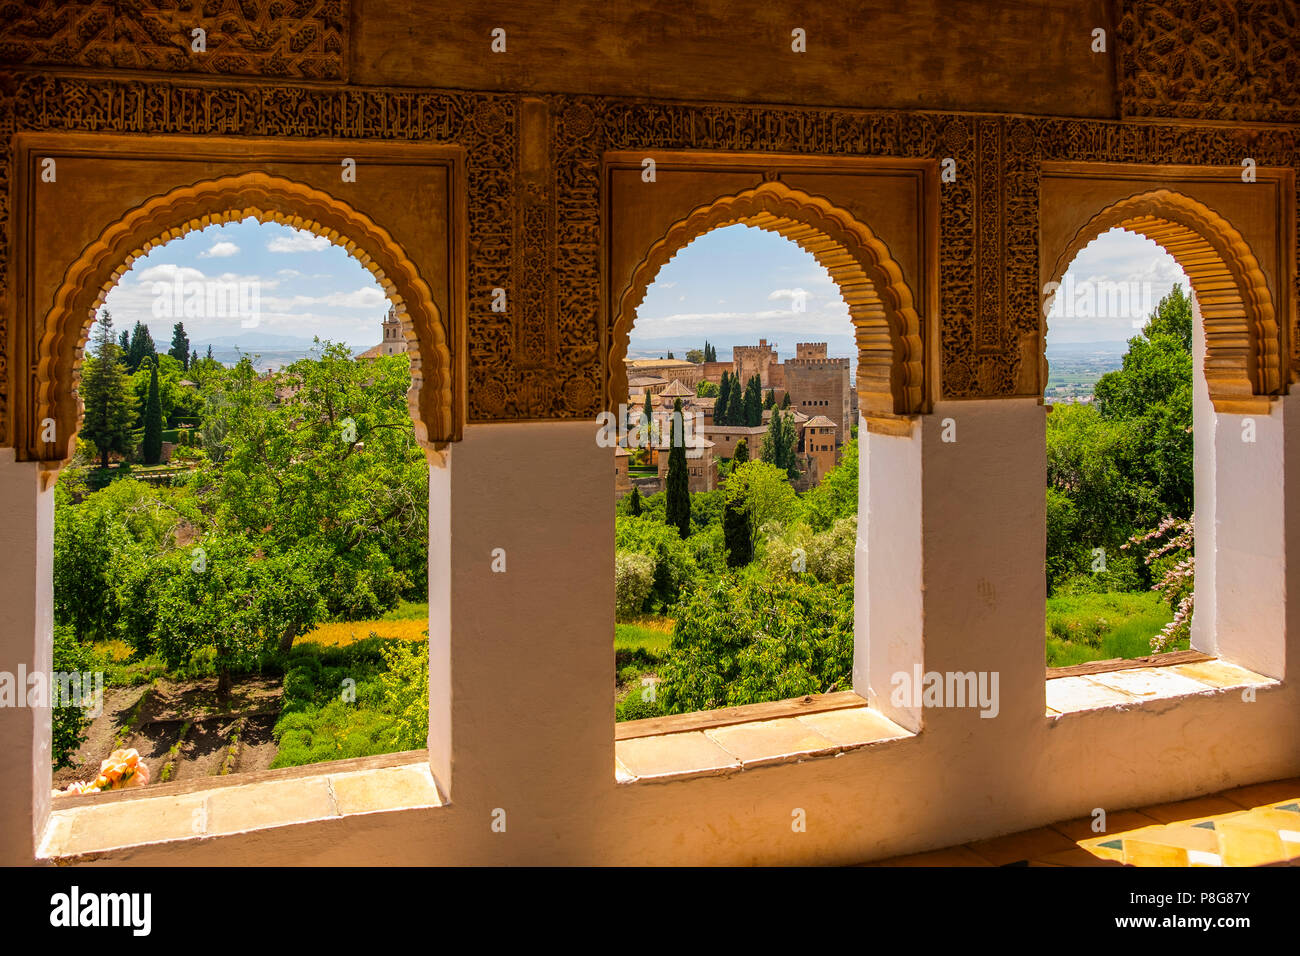 Gardens and panoramic view from Generalife Palace. Alhambra, UNESCO World Heritage Site. Granada City. Andalusia, Southern Spain Europe Stock Photo